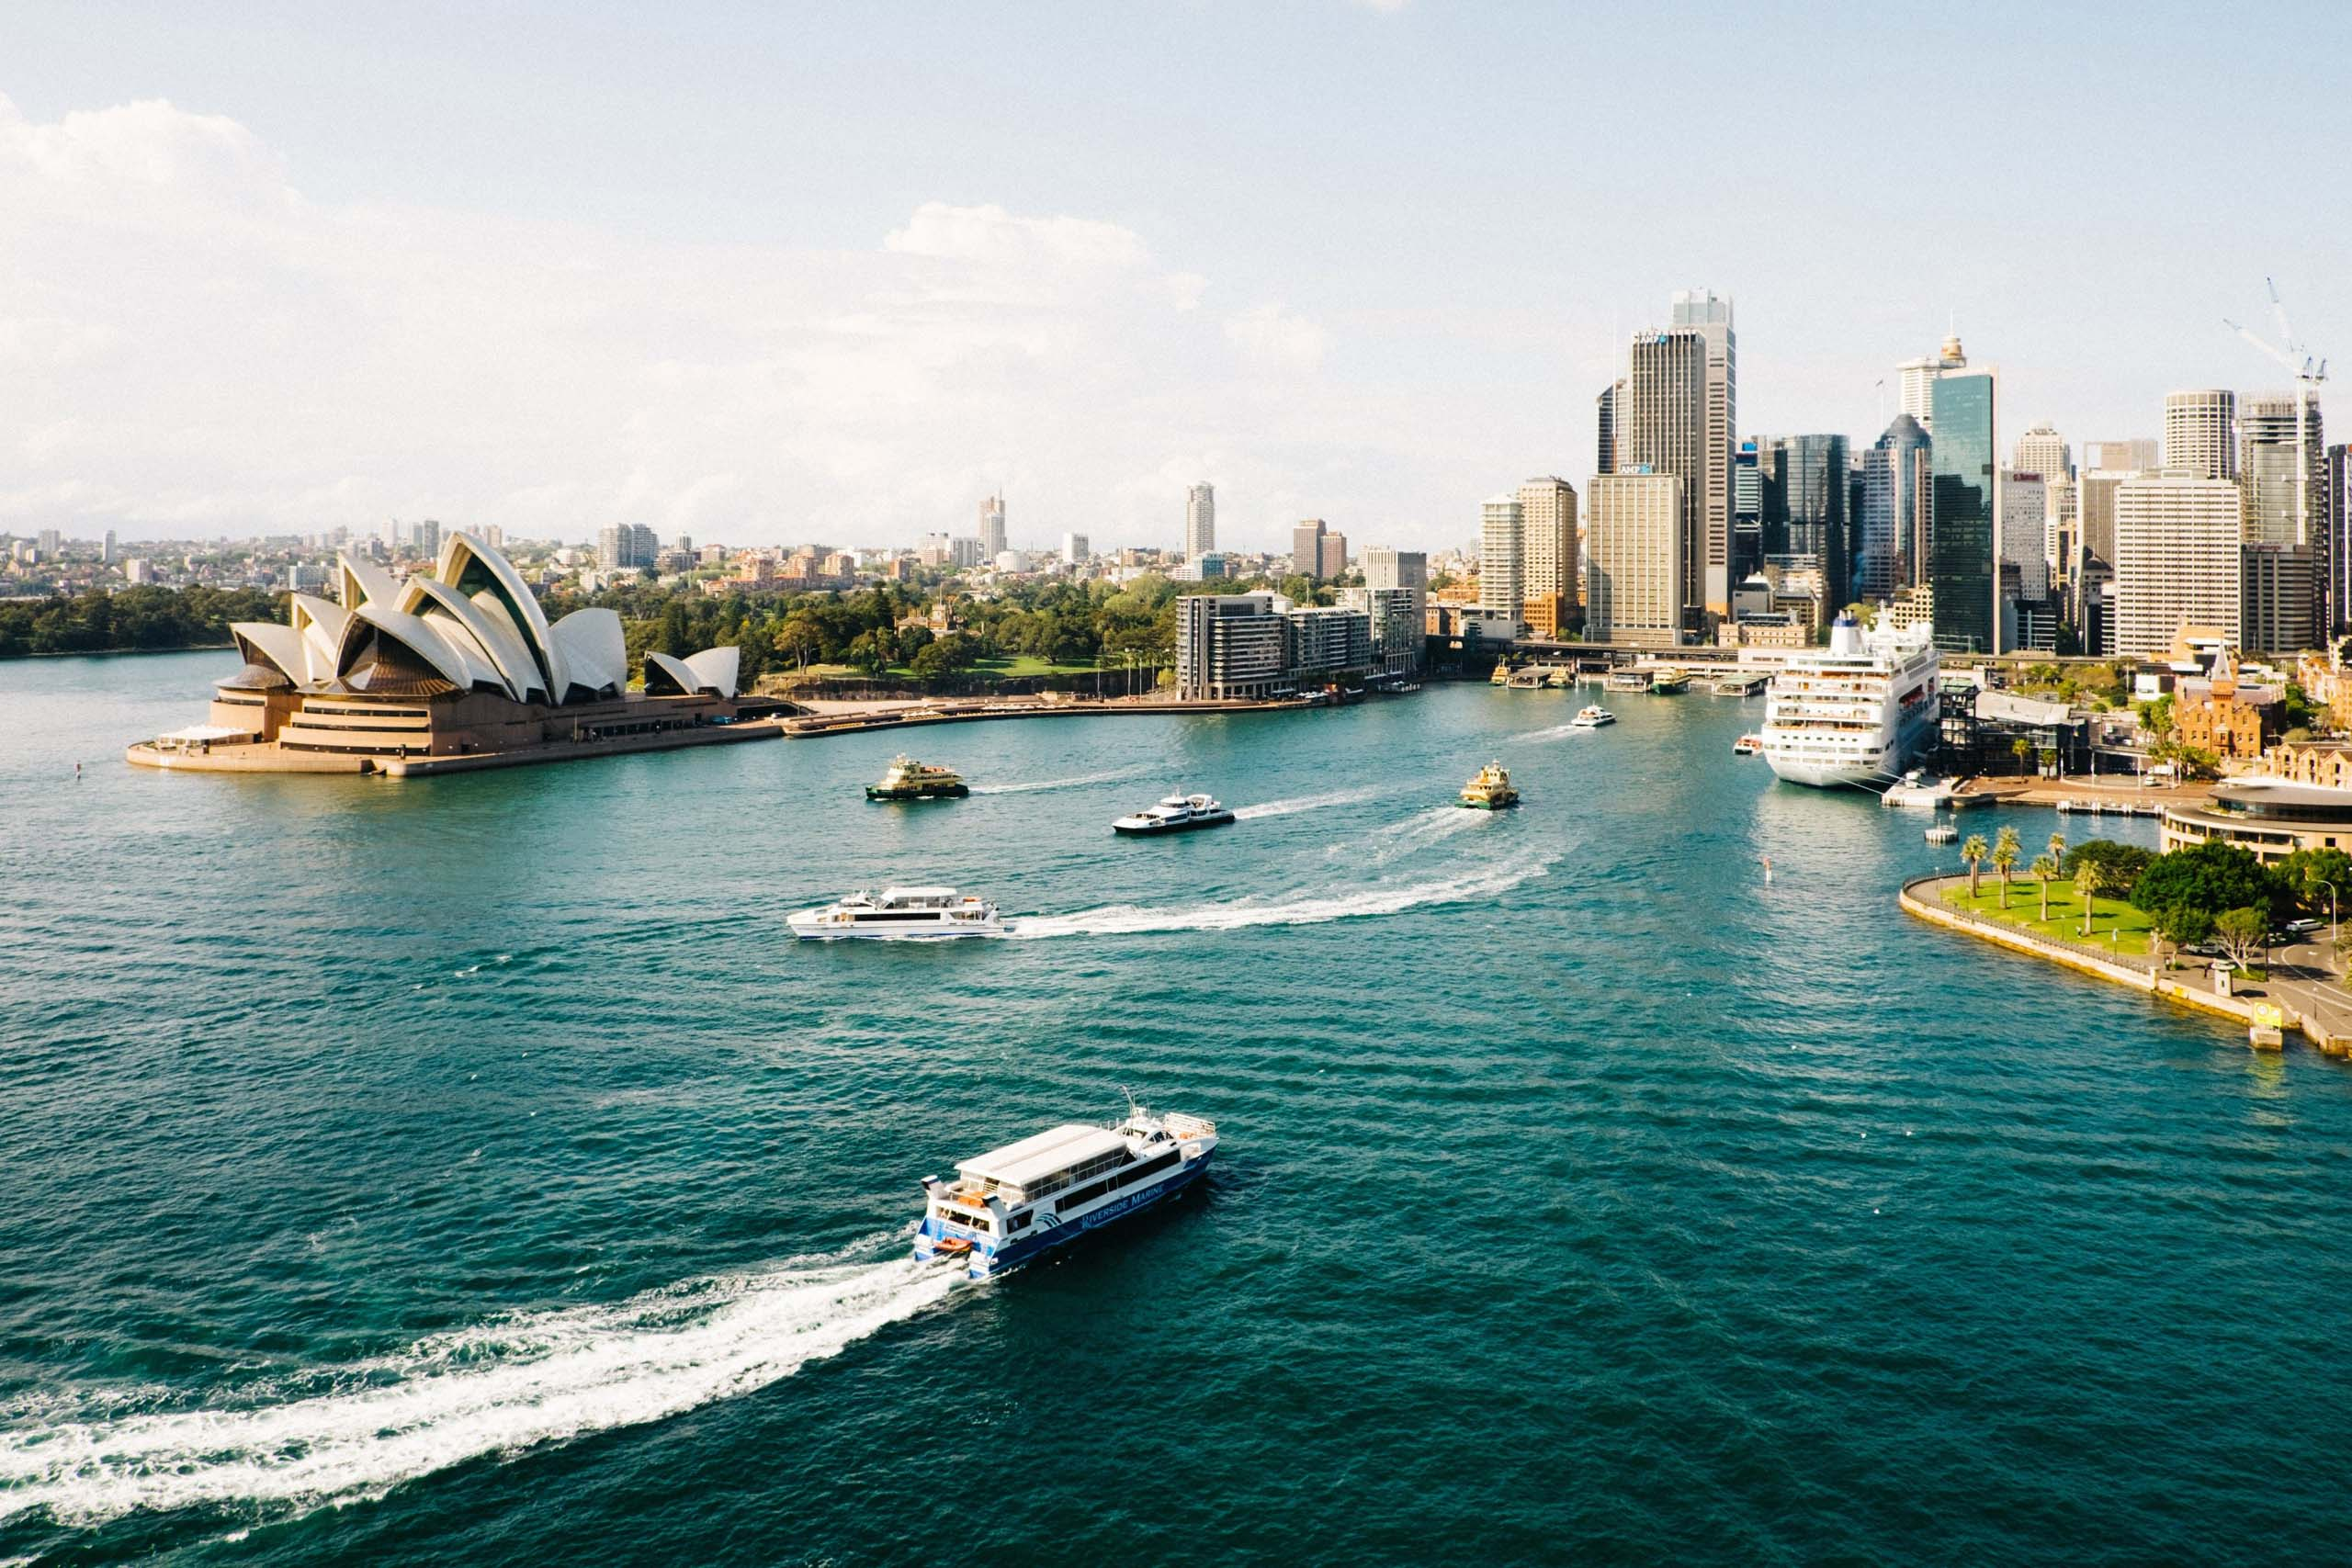 Sydney Harbour, where the race will begin. Photo by an Freeman on Unsplash